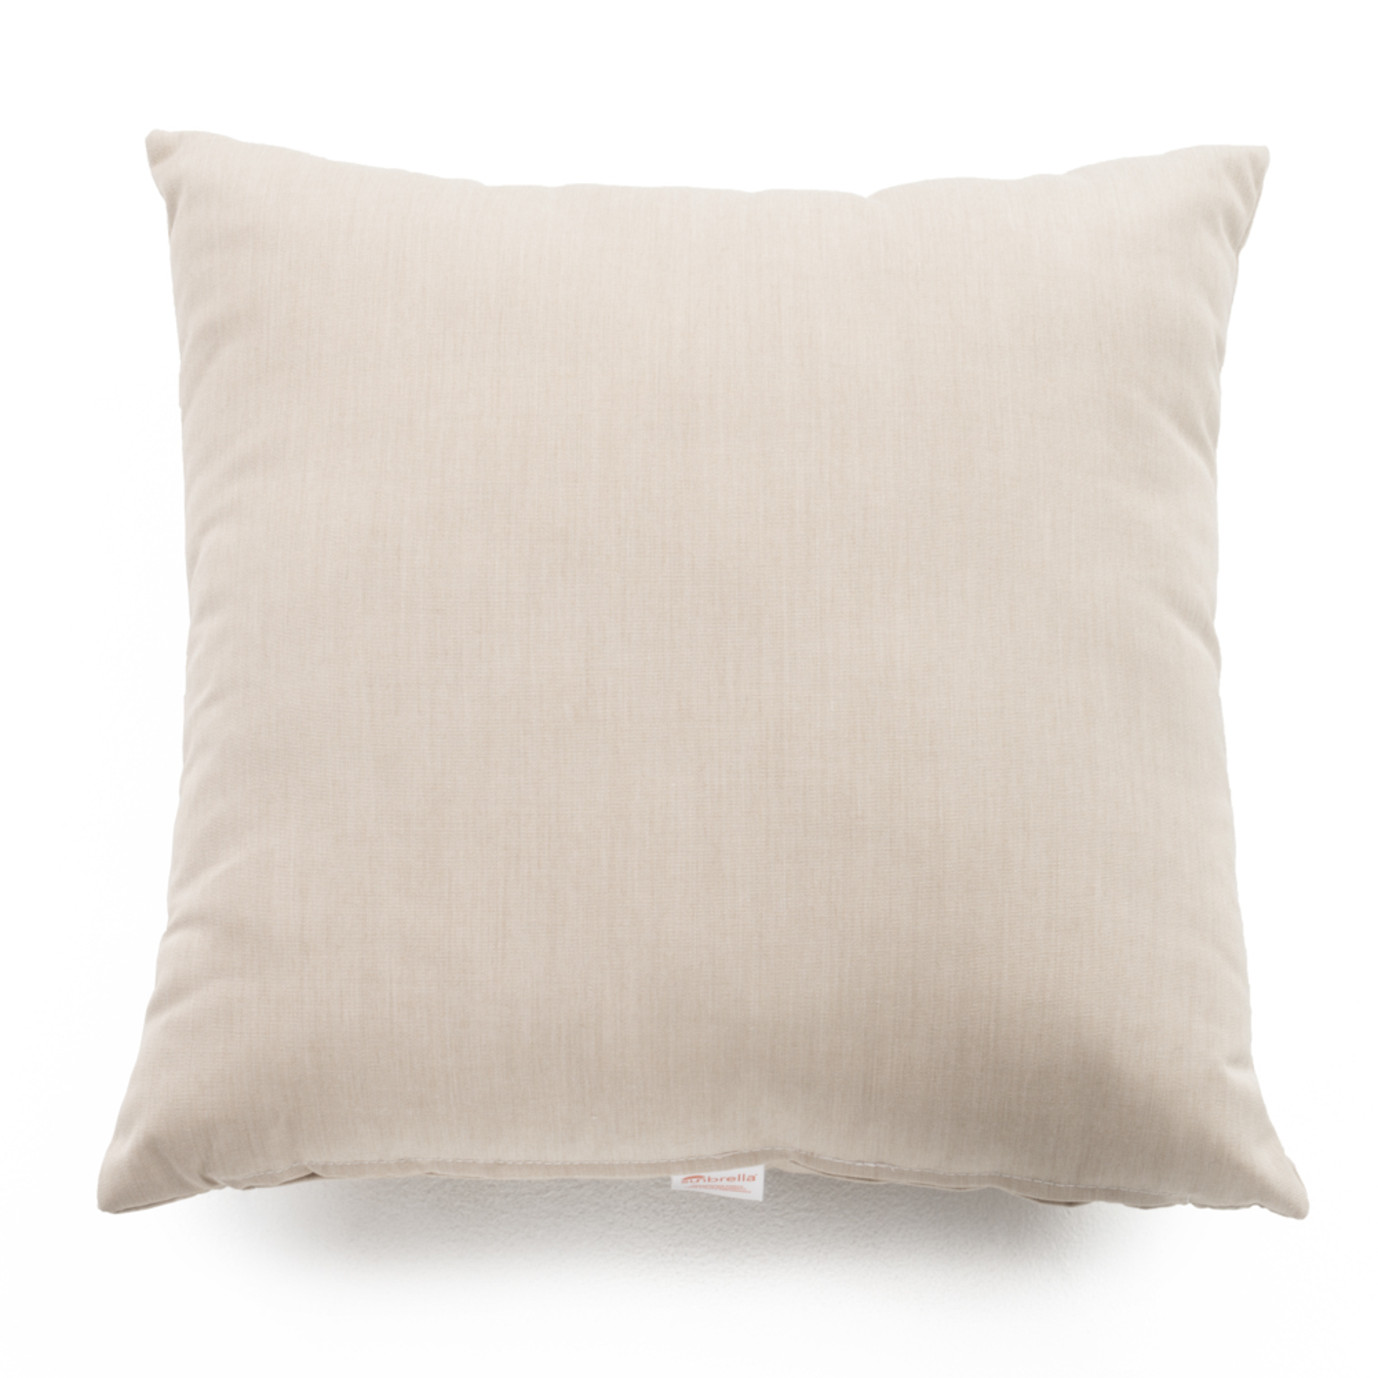 Vistano™ 20n Accent Pillow - Canvas Flax